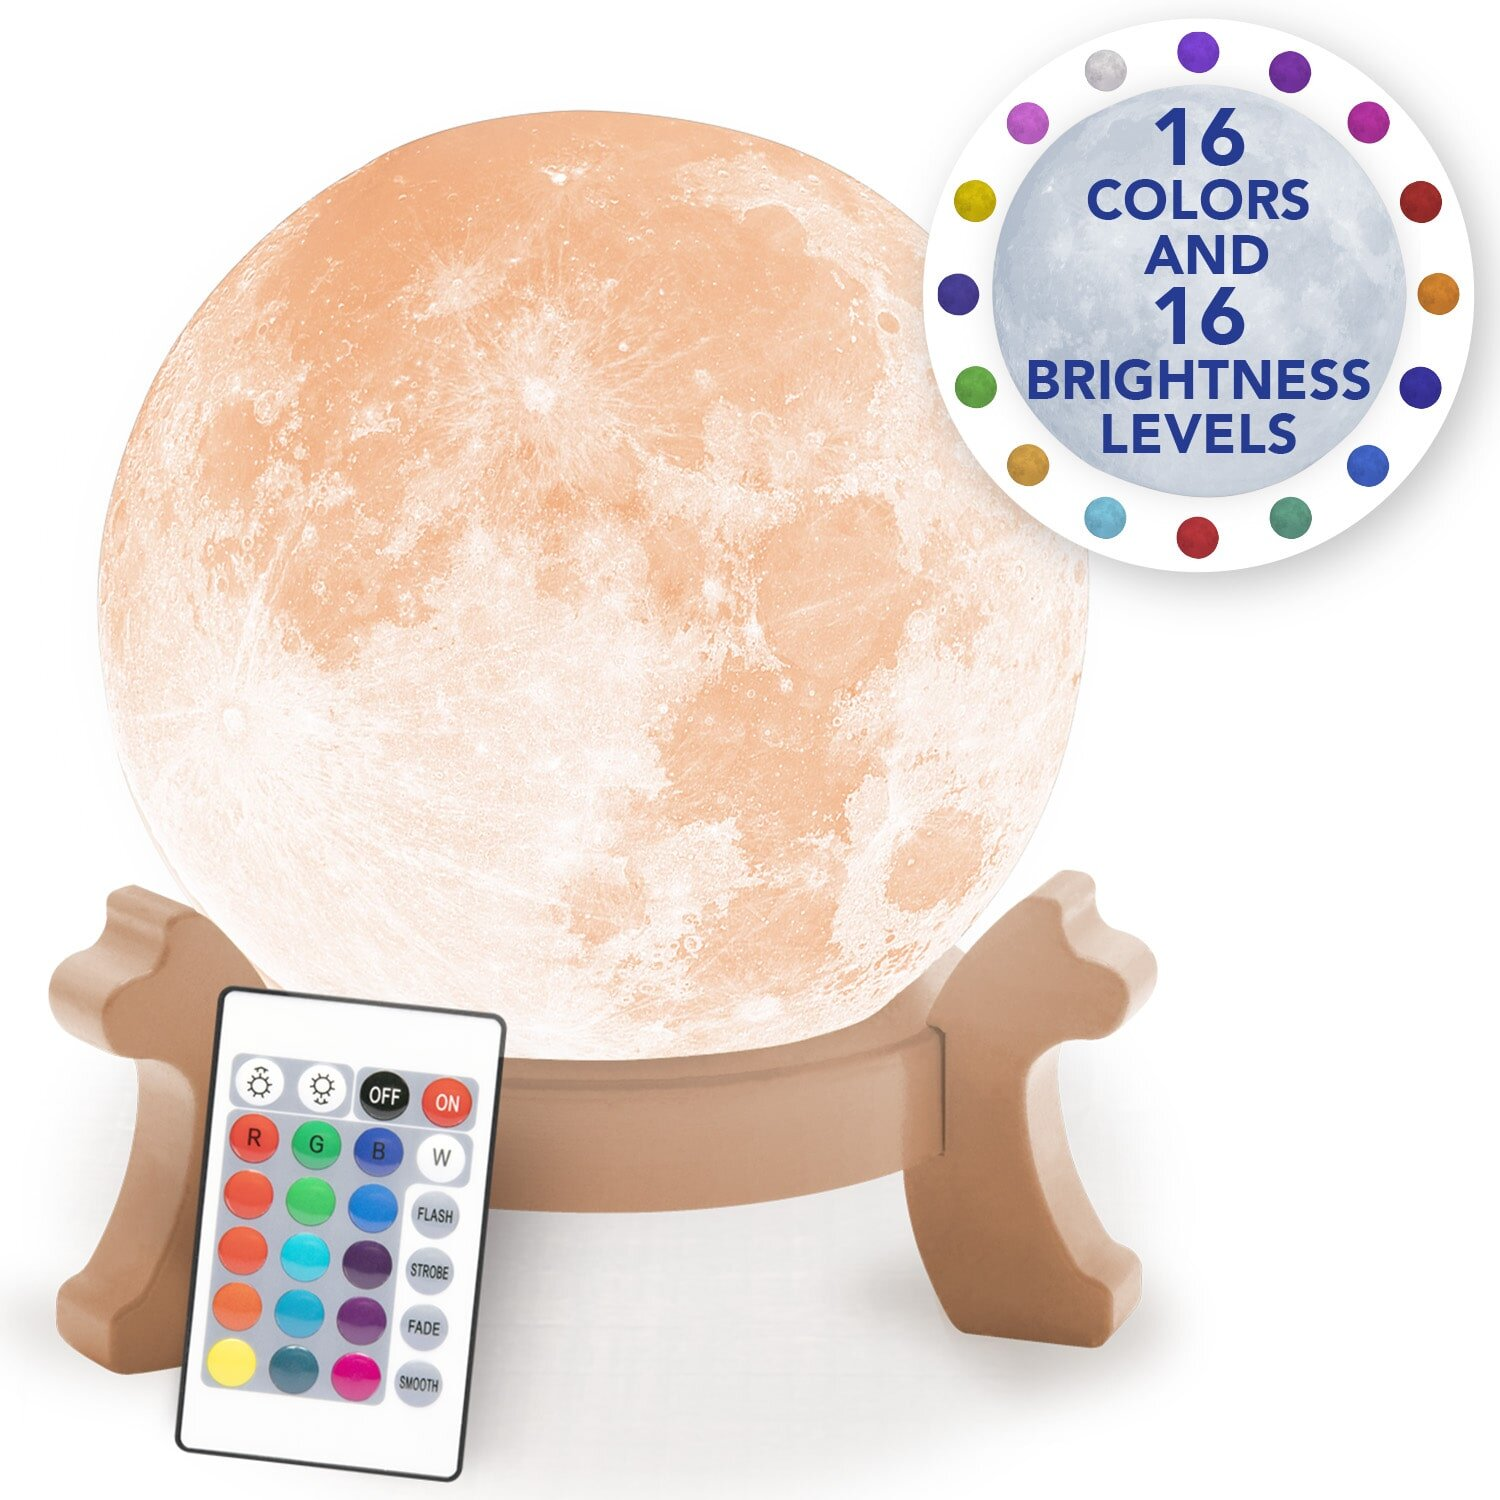 Bulbhead Full Moon Light Decorative Realistic 3 D Led Moon Lamp With 16 Color Light Options 16 Brightness Levels By Bulbhead Remote Control Rechargeable Light Moon Night Light